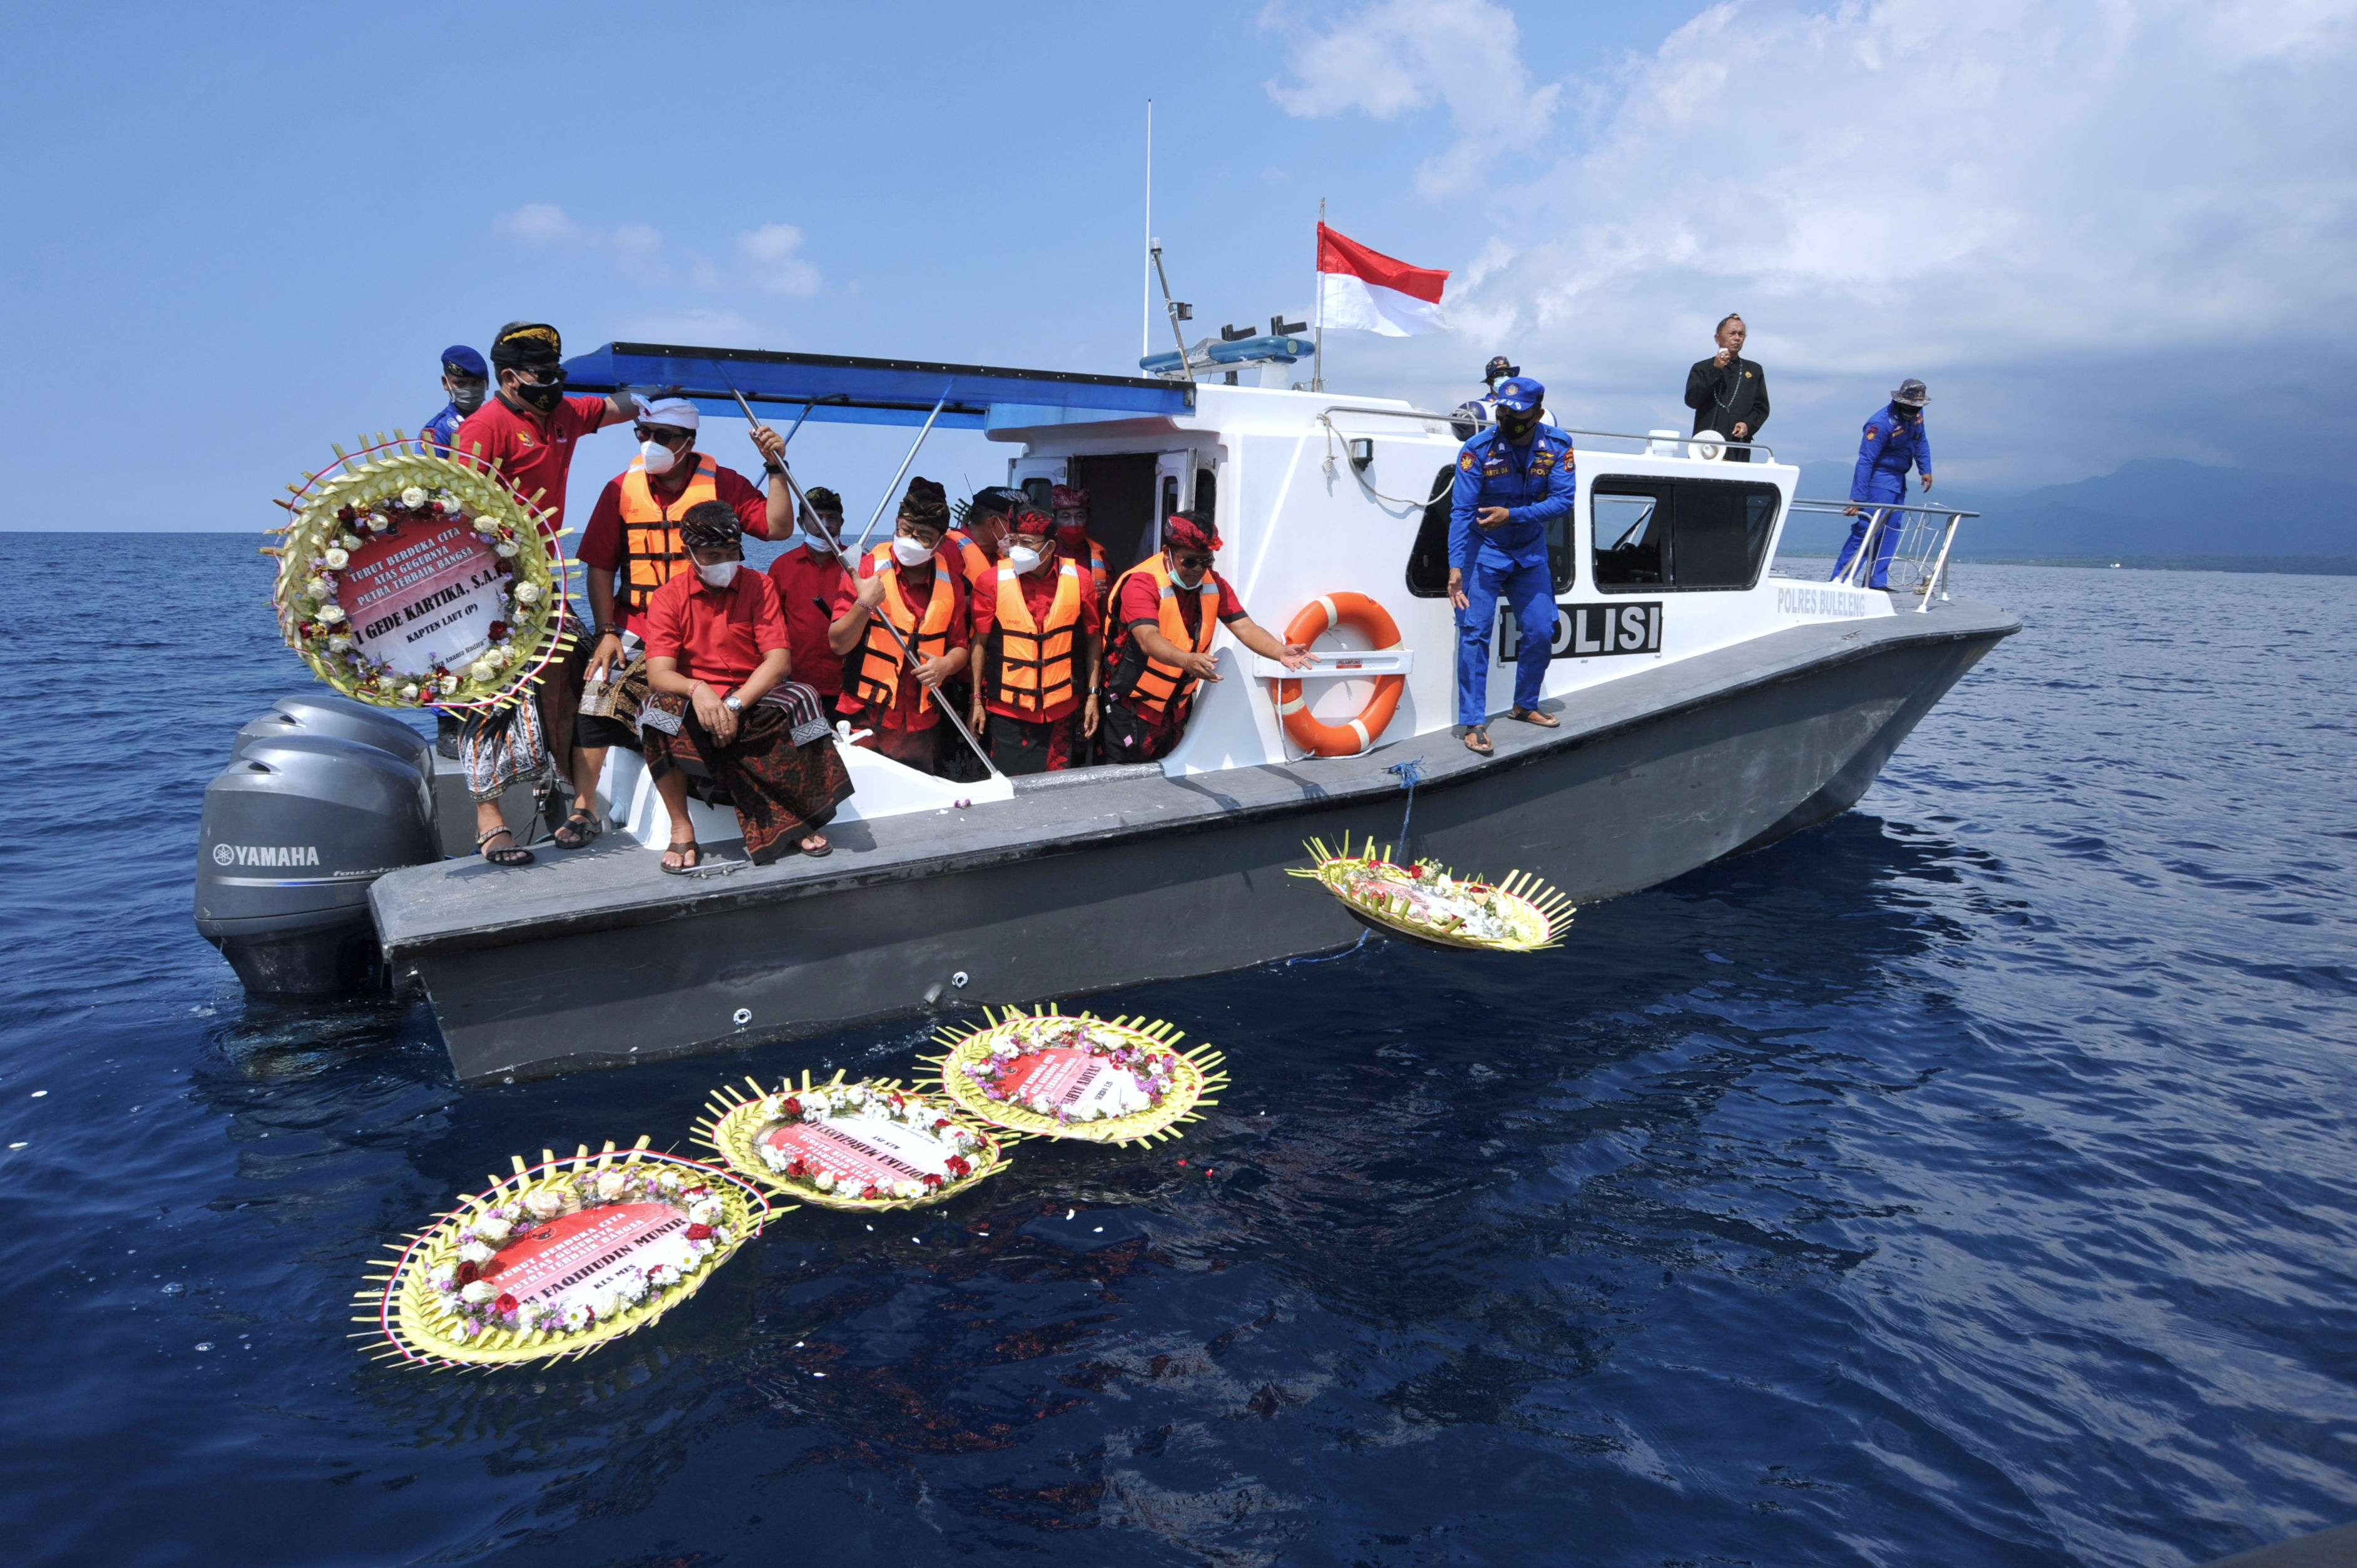 People throw flowers and petals with names of the sunken KRI Nanggala-402 submarine crew members from the boat during a prayer at the sea near Labuhan Lalang, Bali, Indonesia April 26, 2021, in this photo taken by Antara Foto/Fikri Yusuf/via Reuters.